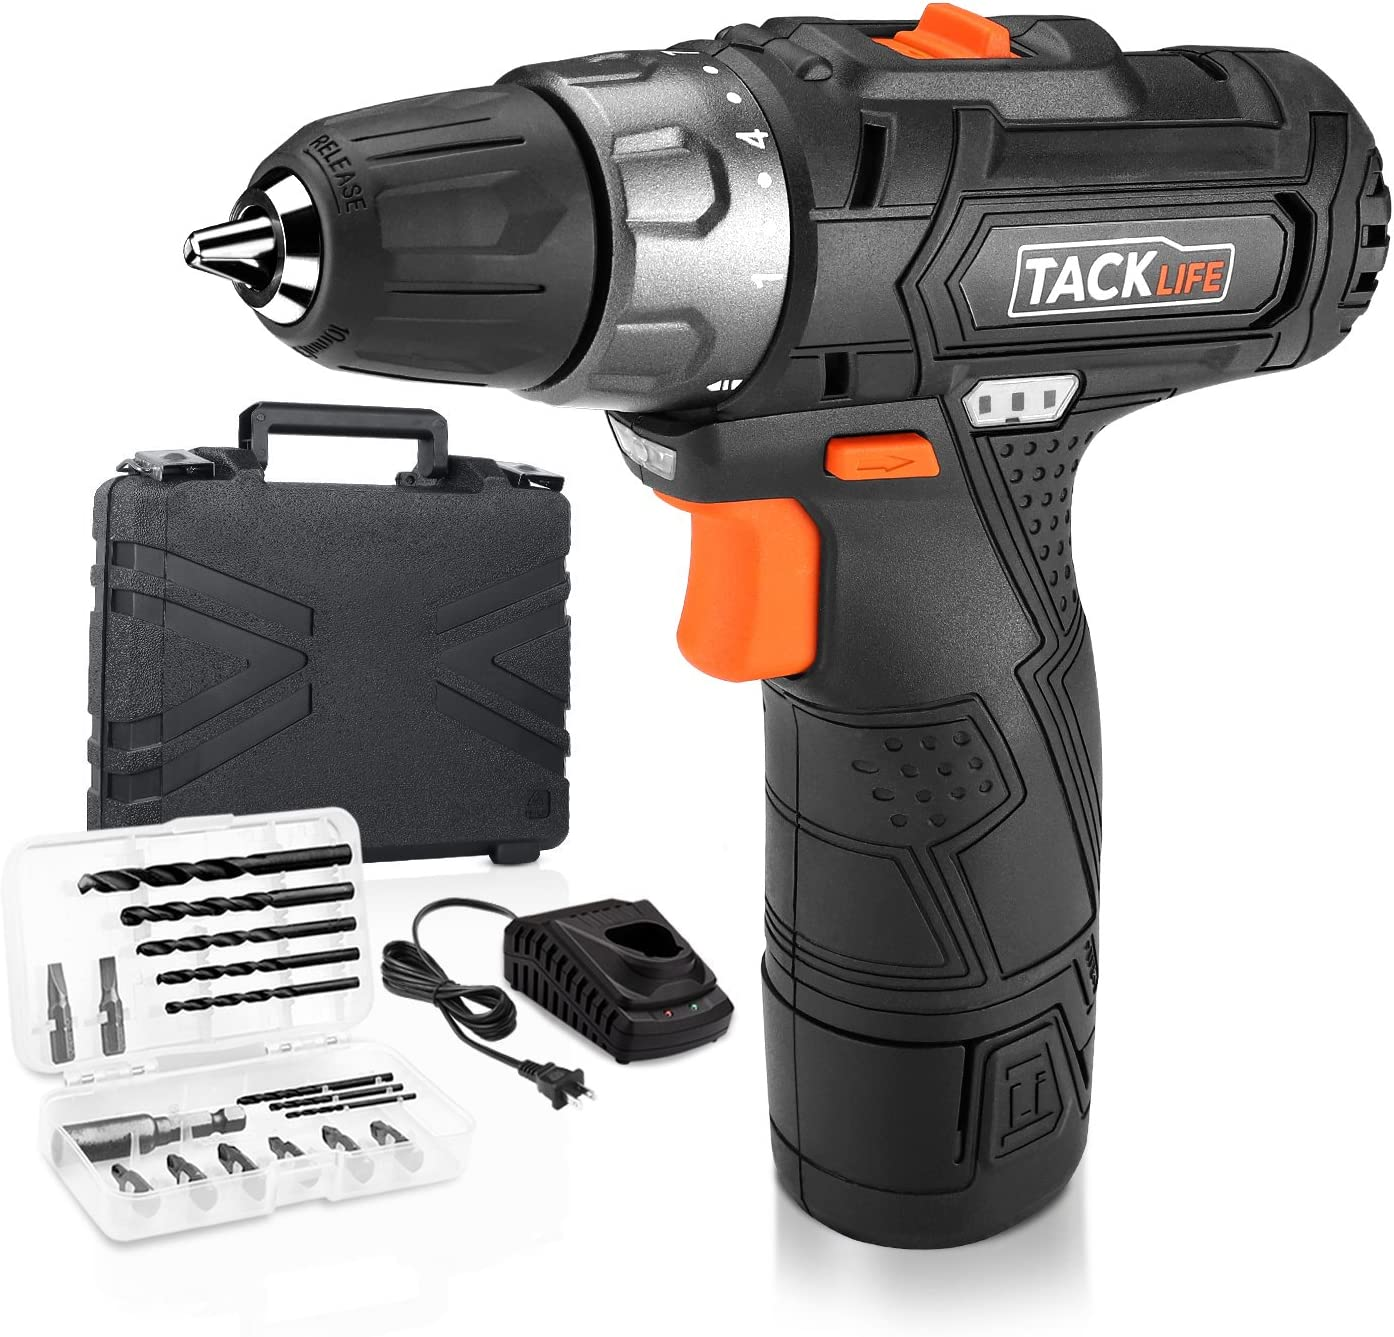 Tacklife PCD02B 12V Lithium-Ion Cordless Drill Driver 3 8-Inch Chuck Max Torque 220 In-lbs, 2 Speed, 1 Hour Fast Charger, 19 1 Position with LED, 17pcs Drill Driver Bits Included, Black